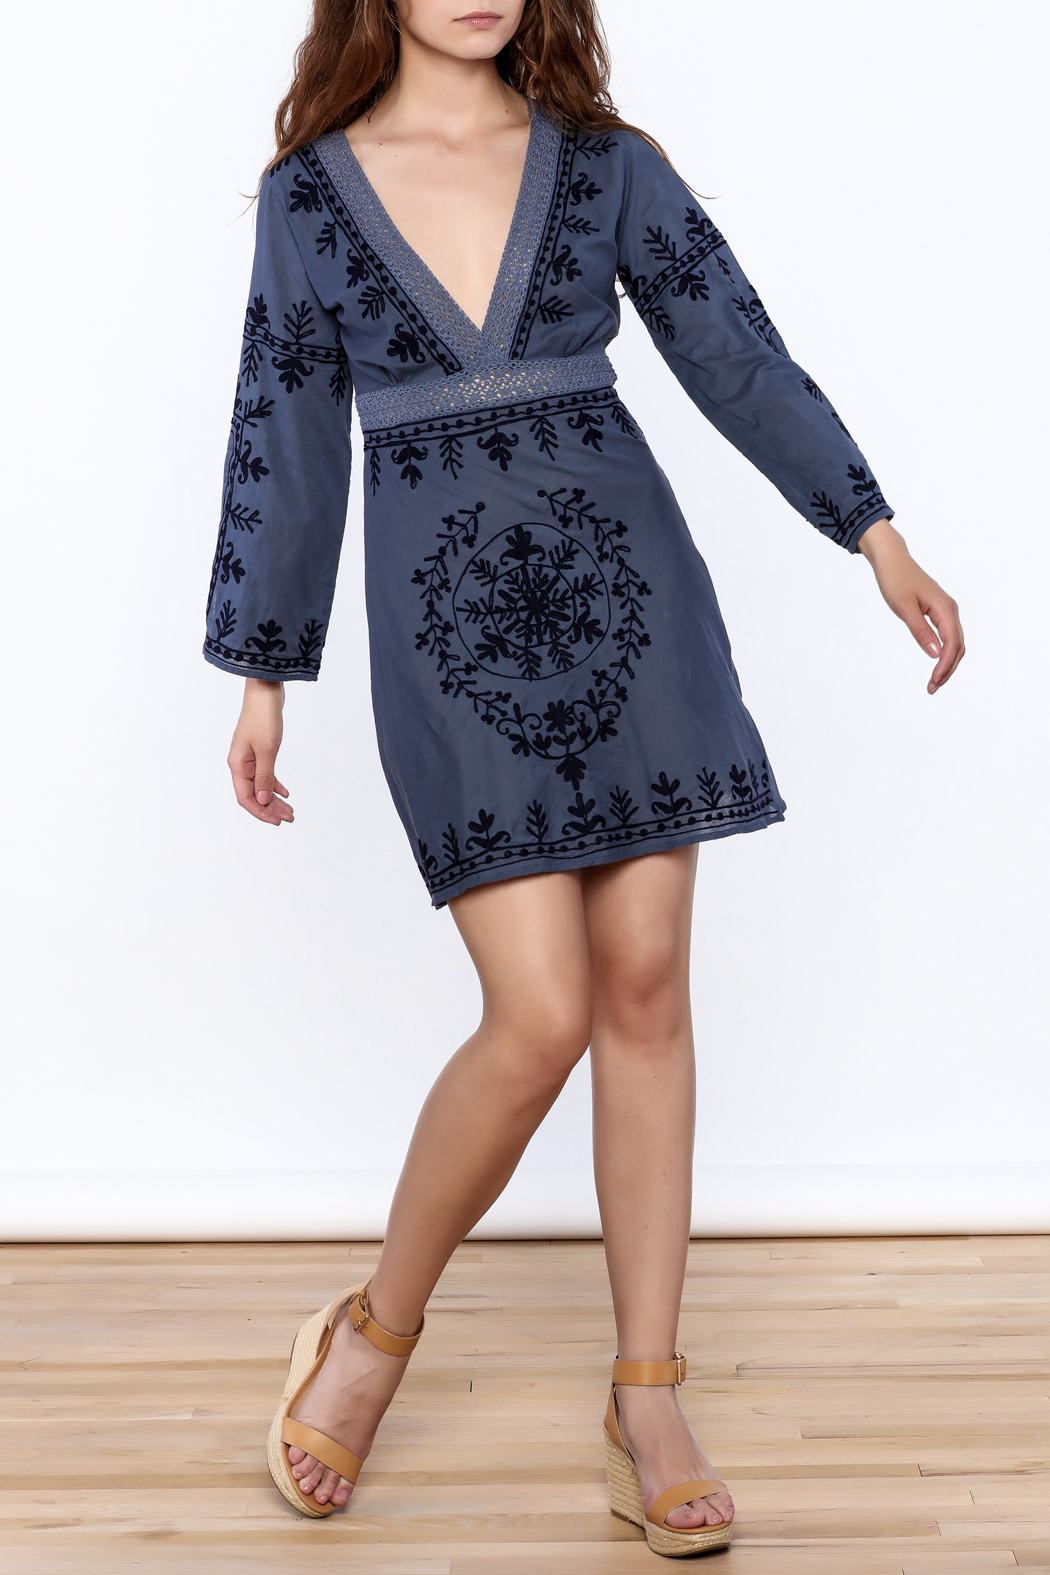 Debbie Katz Blue Embroidered Dress - Front Full Image